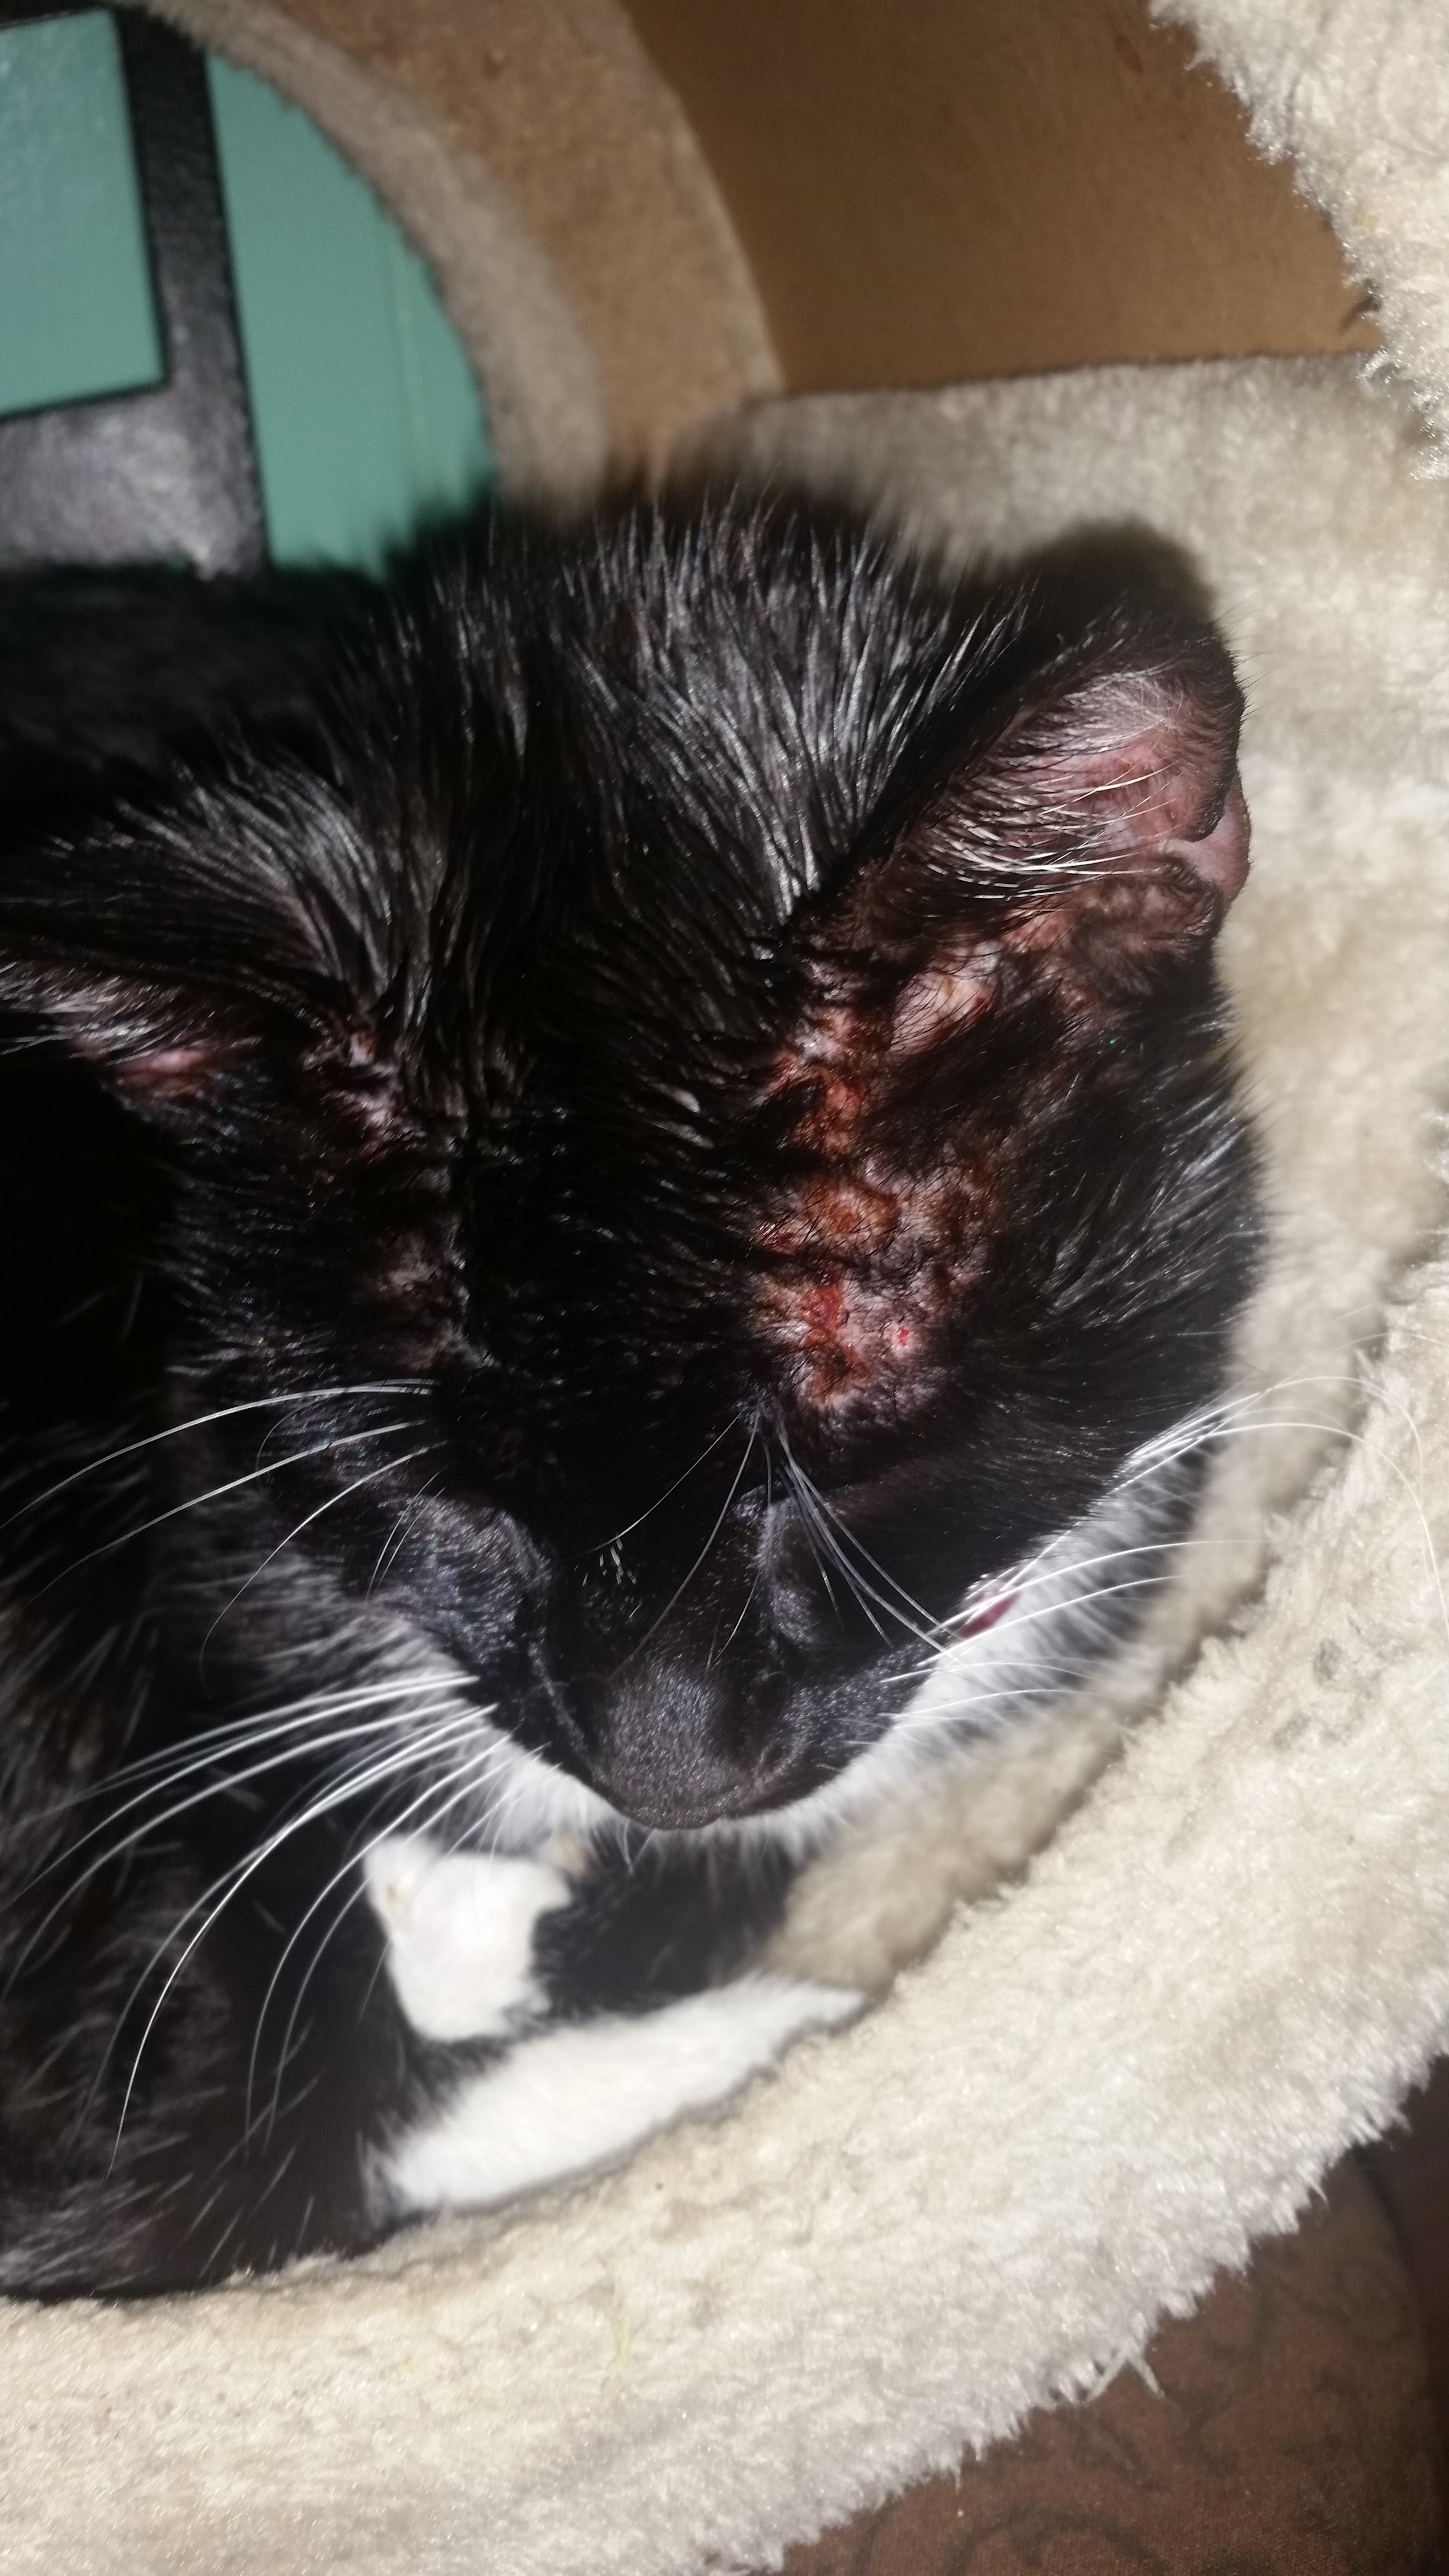 Ear Mites And Face Rash | TheCatSite Ear Mites In Cats